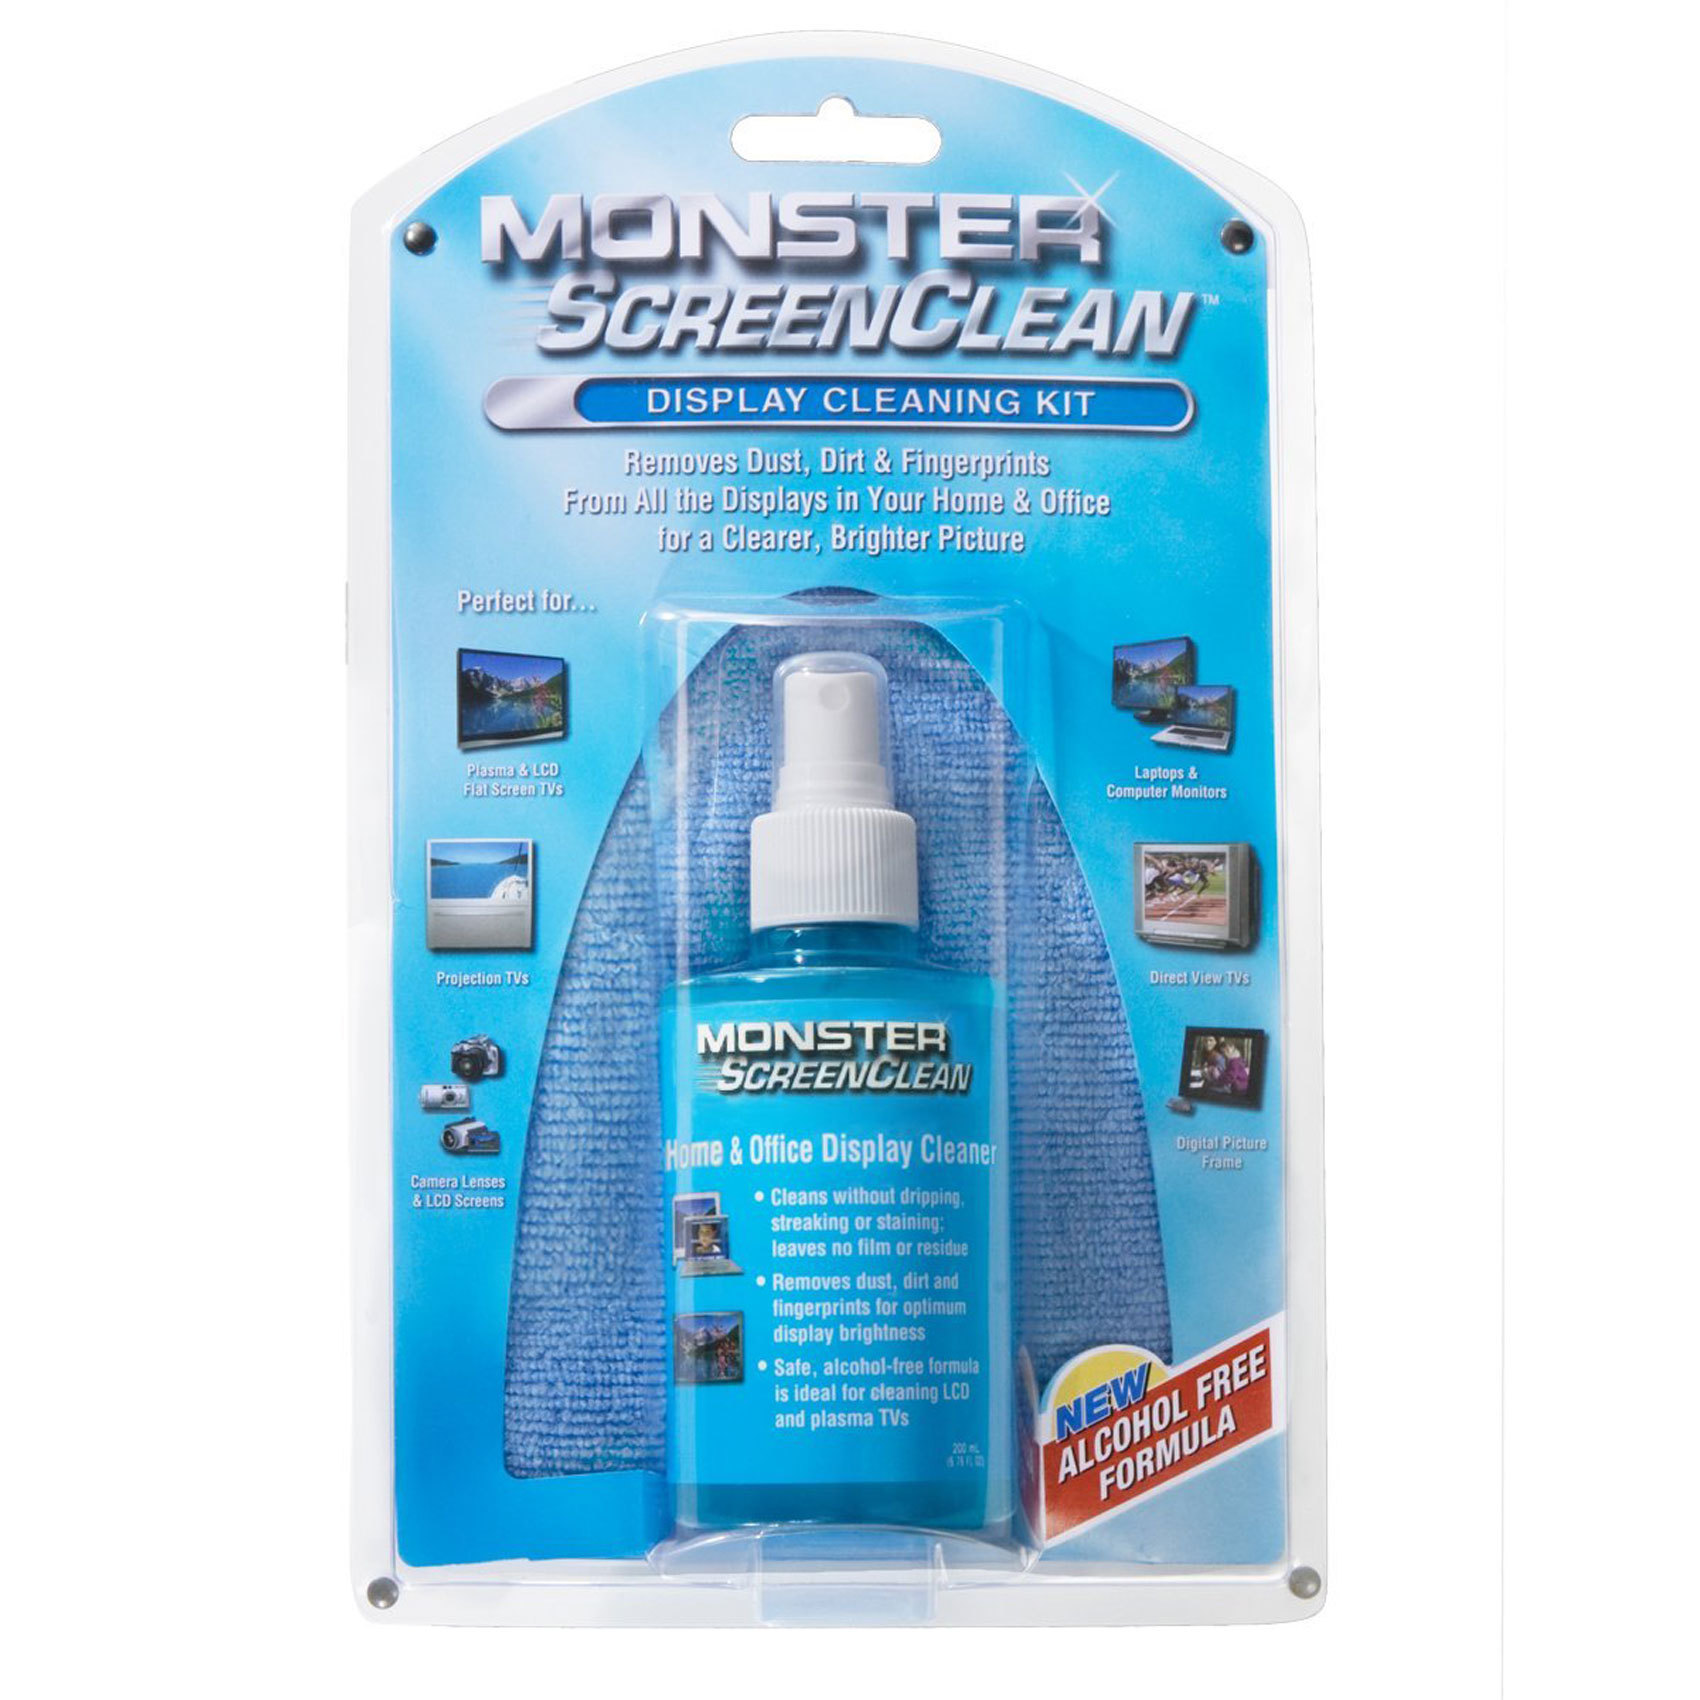 MONSTER SCREEN TV CLEANING KIT